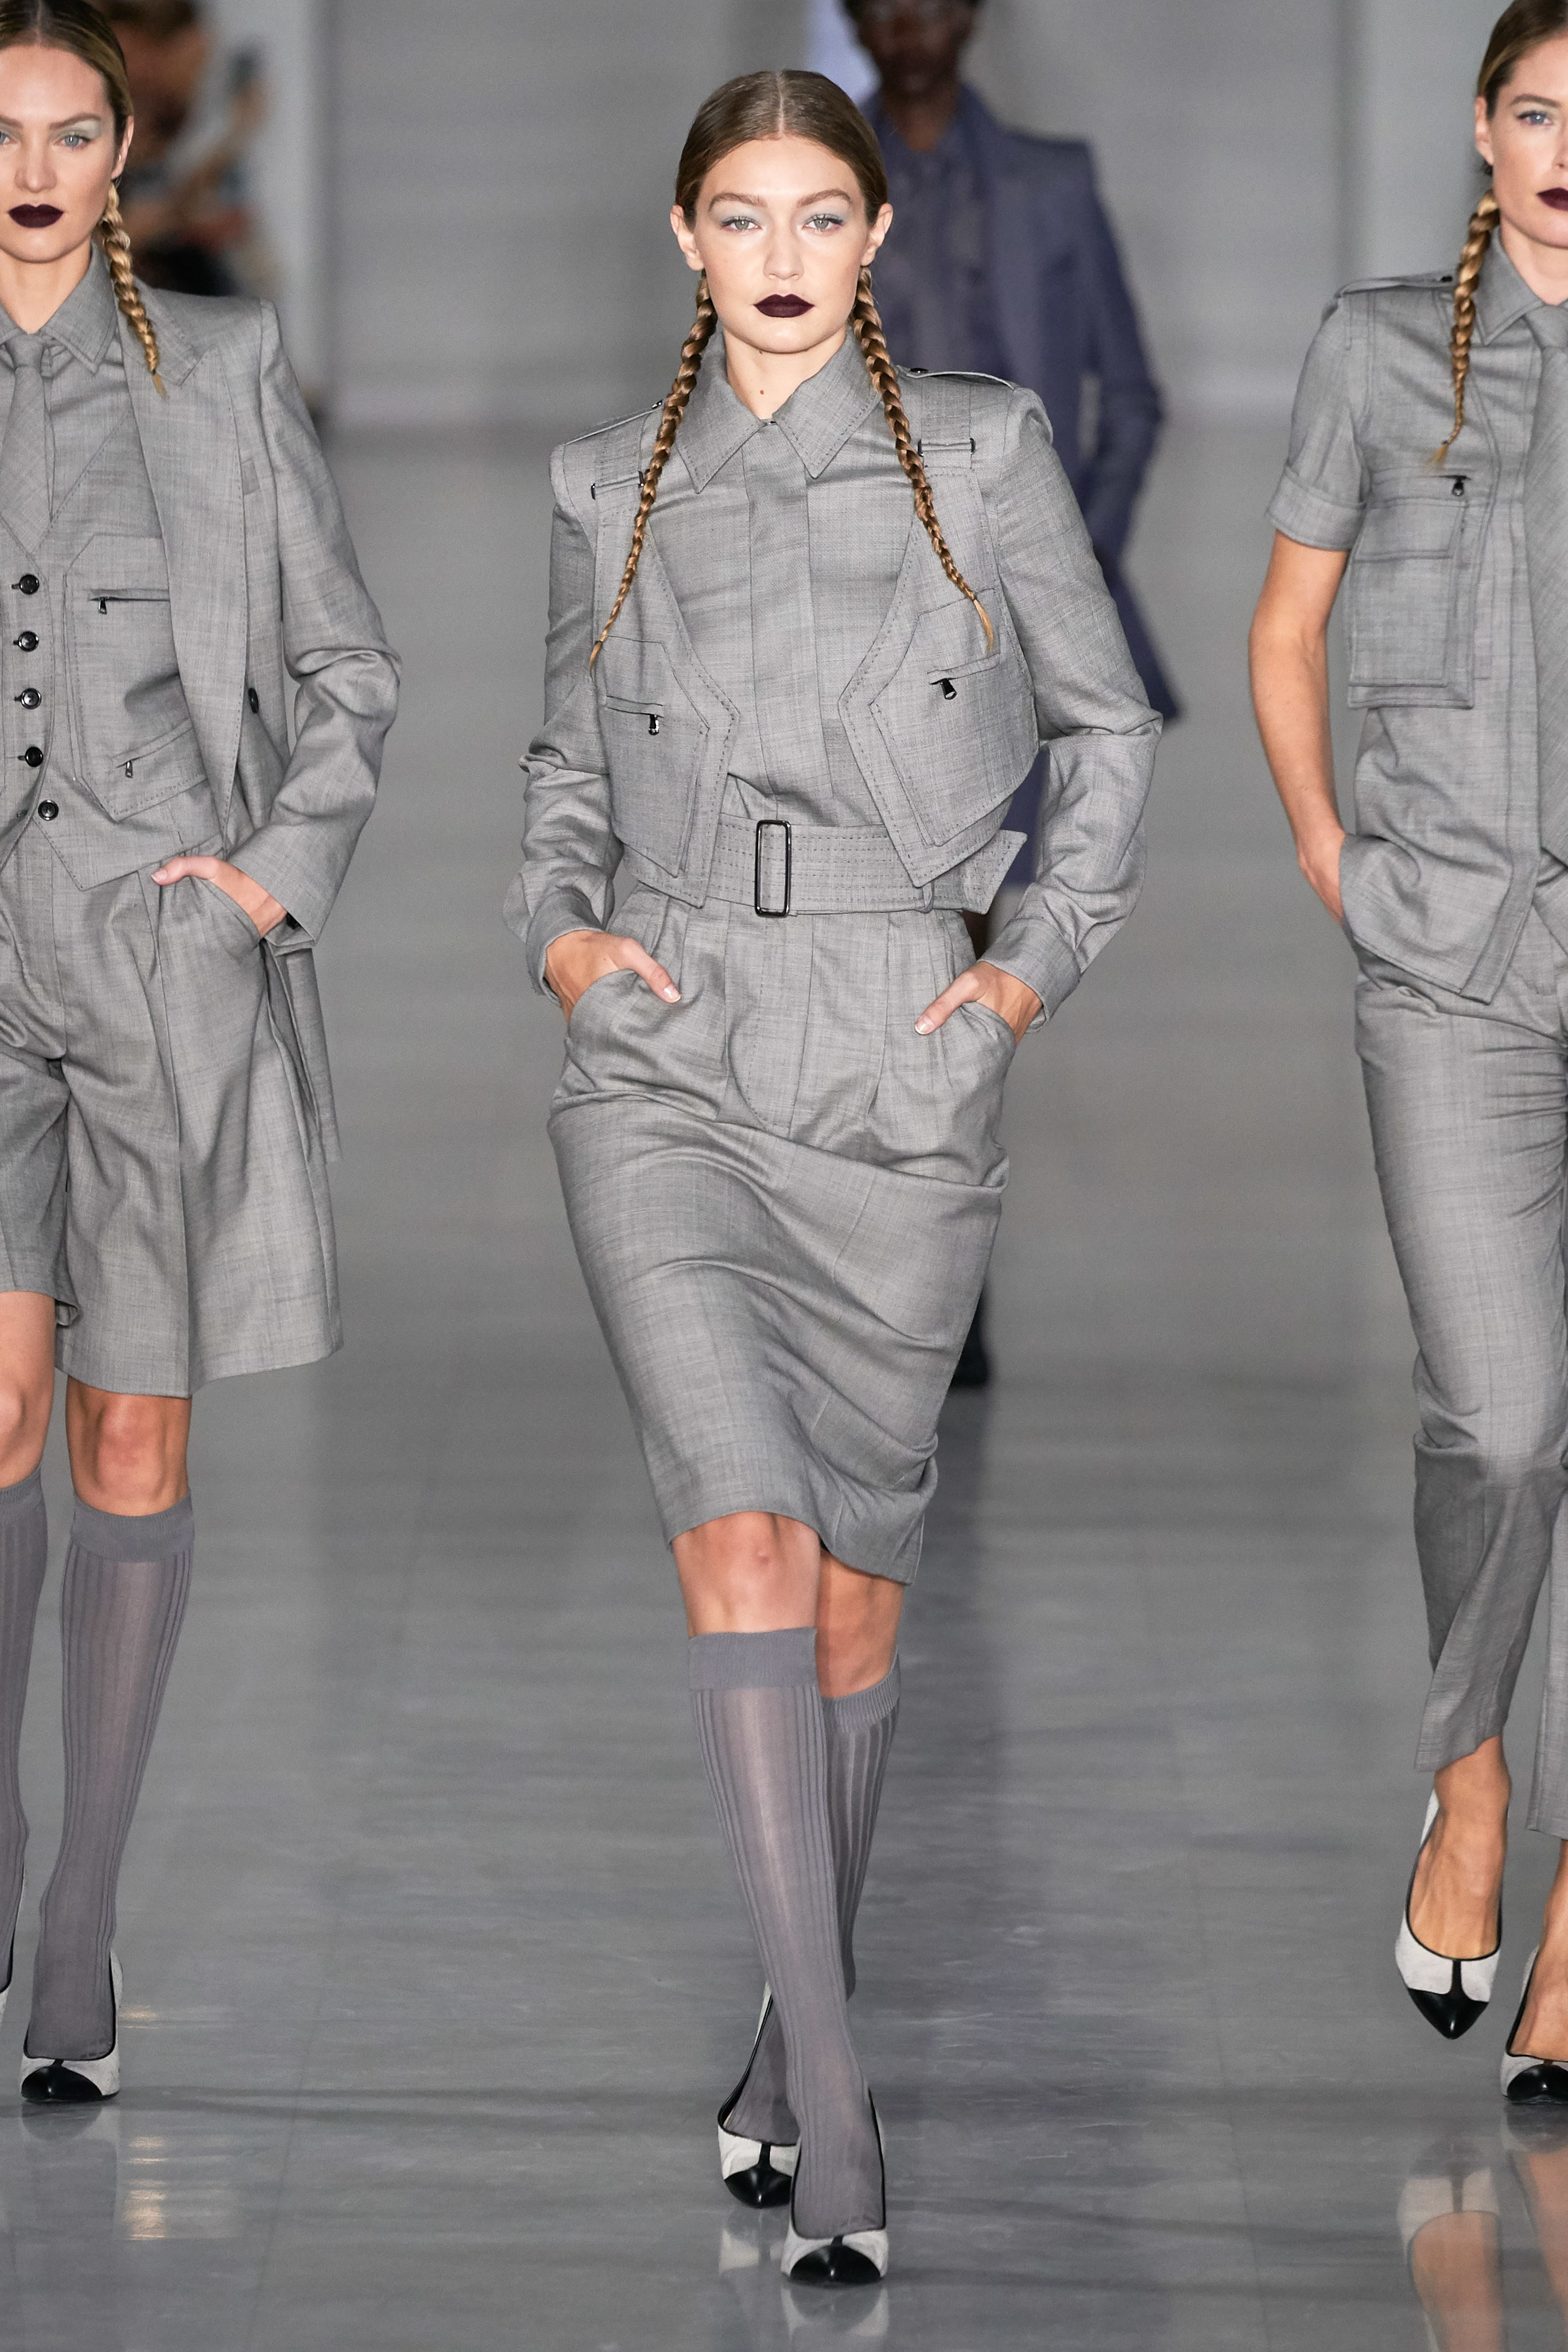 Max Mara Spring Summer 2020 SS2020 trends runway coverage Ready To Wear VogueGivenchy Spring Summer 2020 SS2020 trends runway coverage Ready To Wear Vogue monochrome